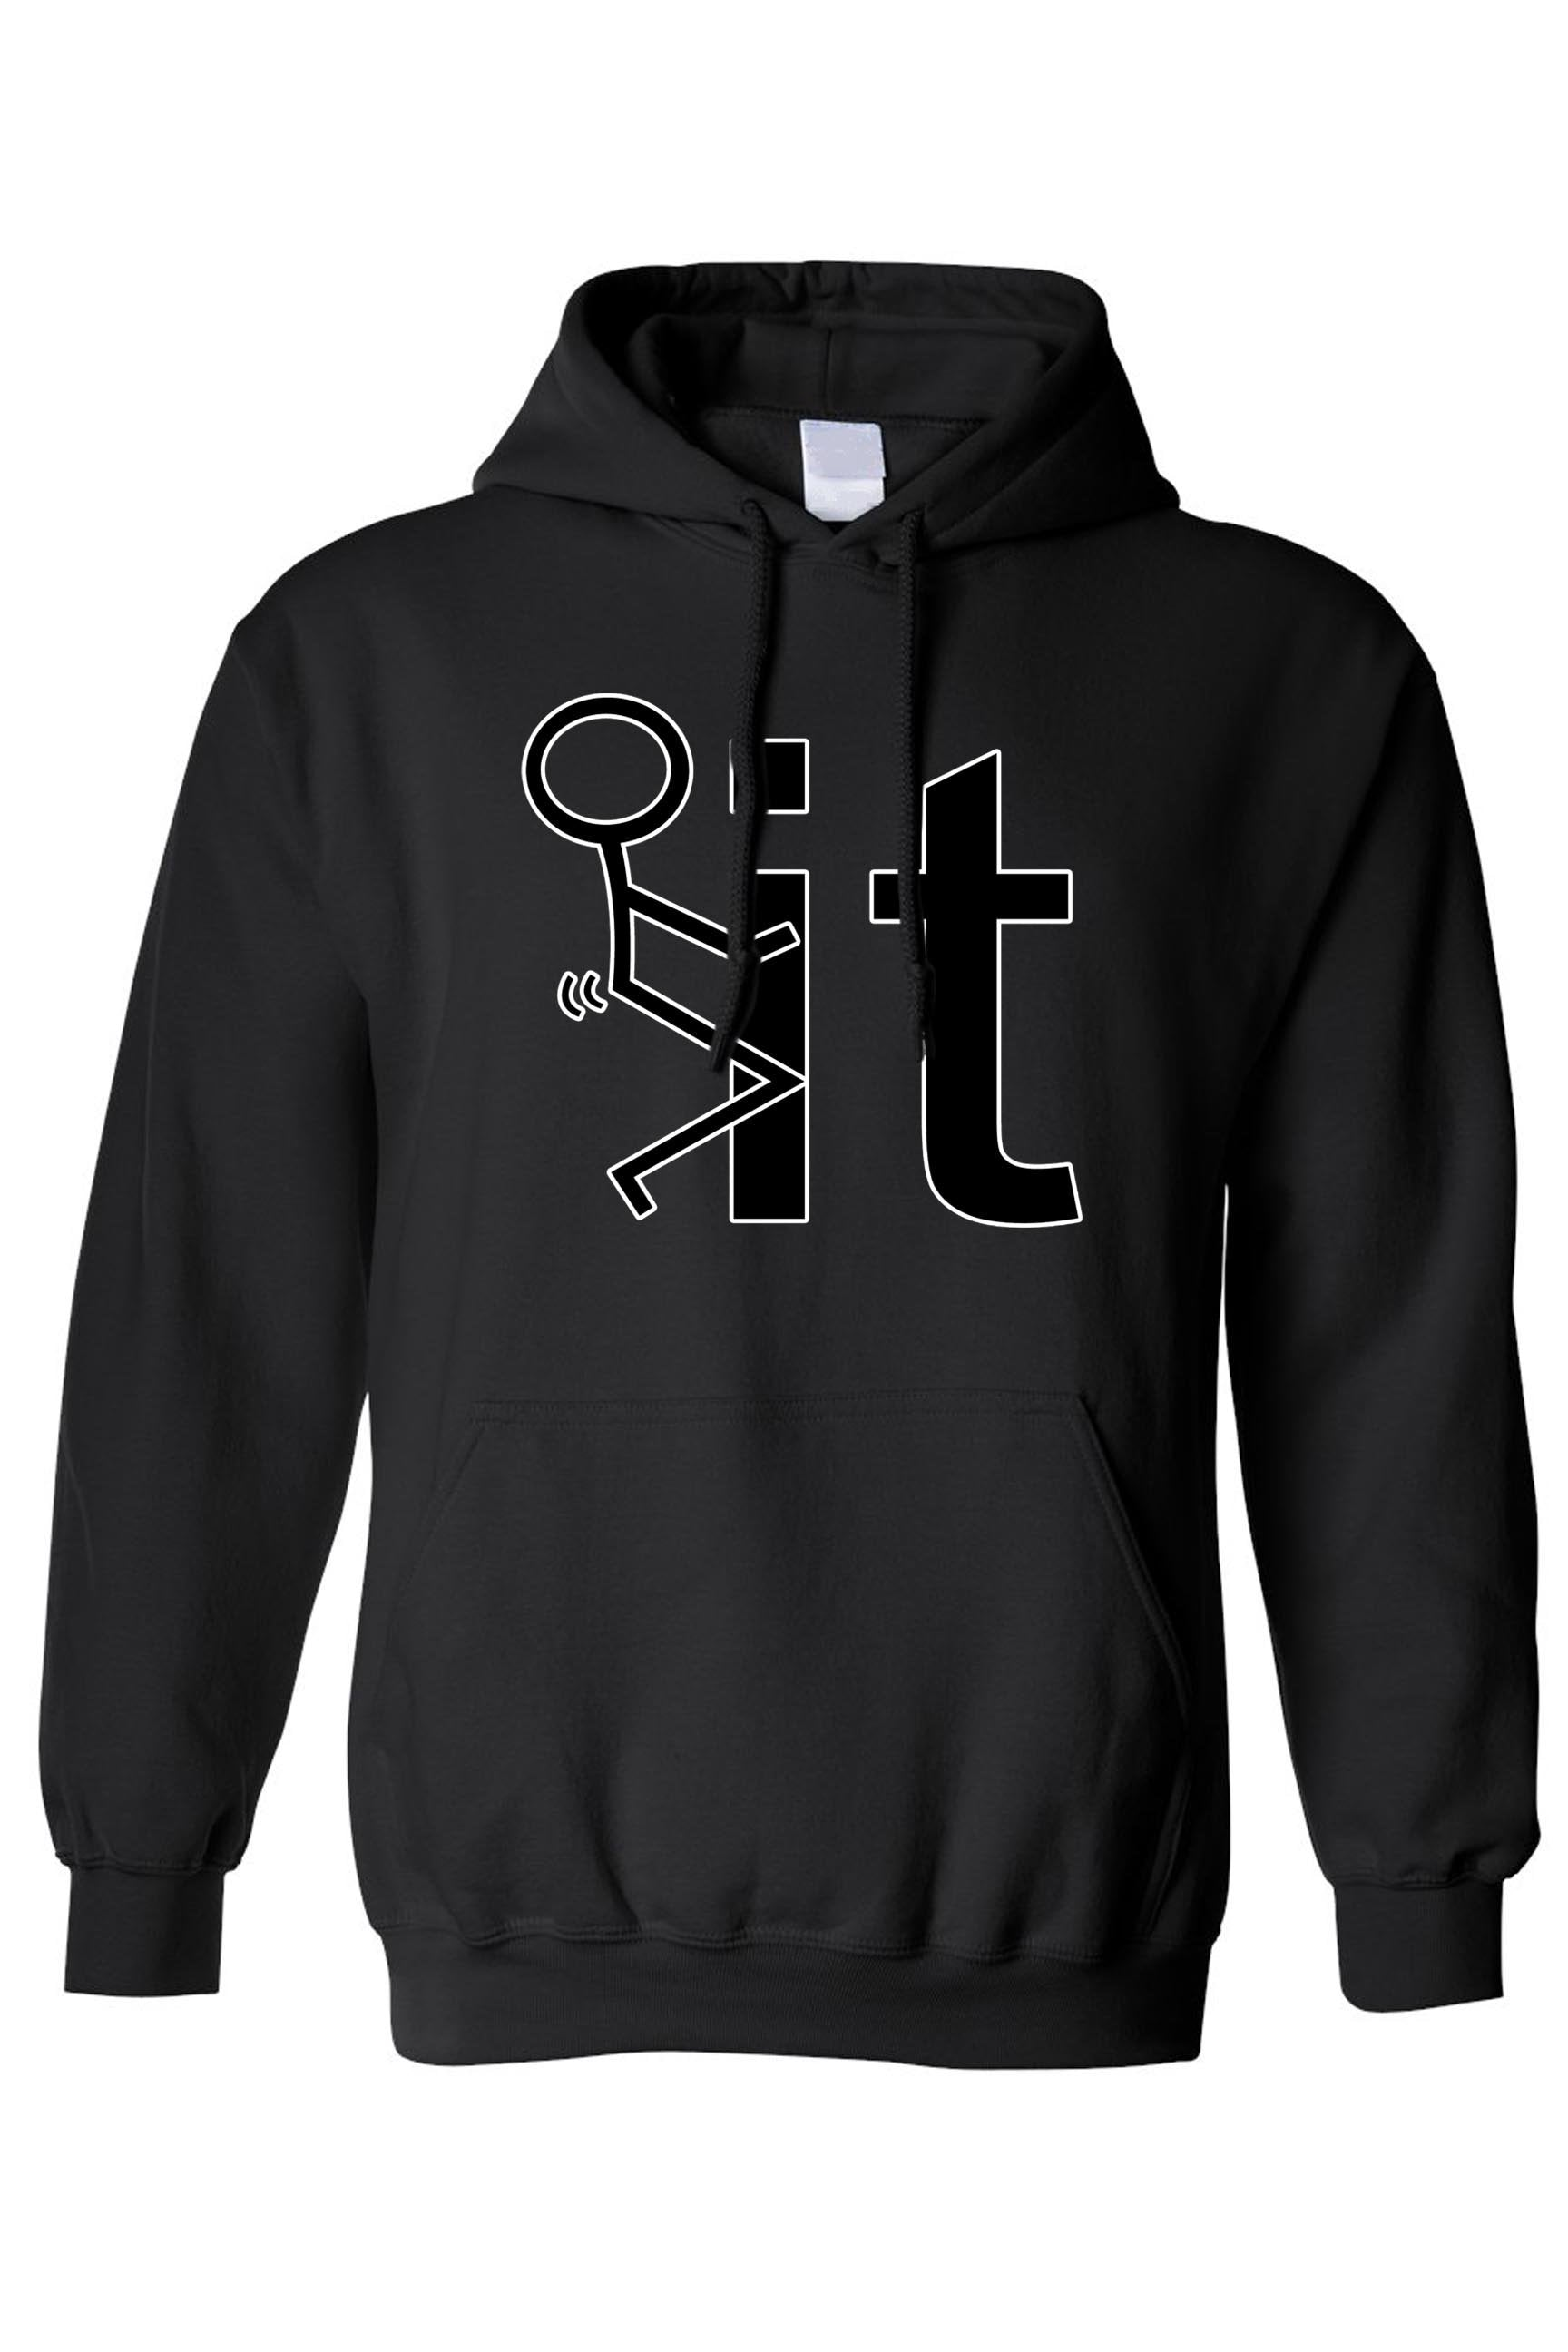 Unisex Stick Figure F*ck It Pullover HOODIE